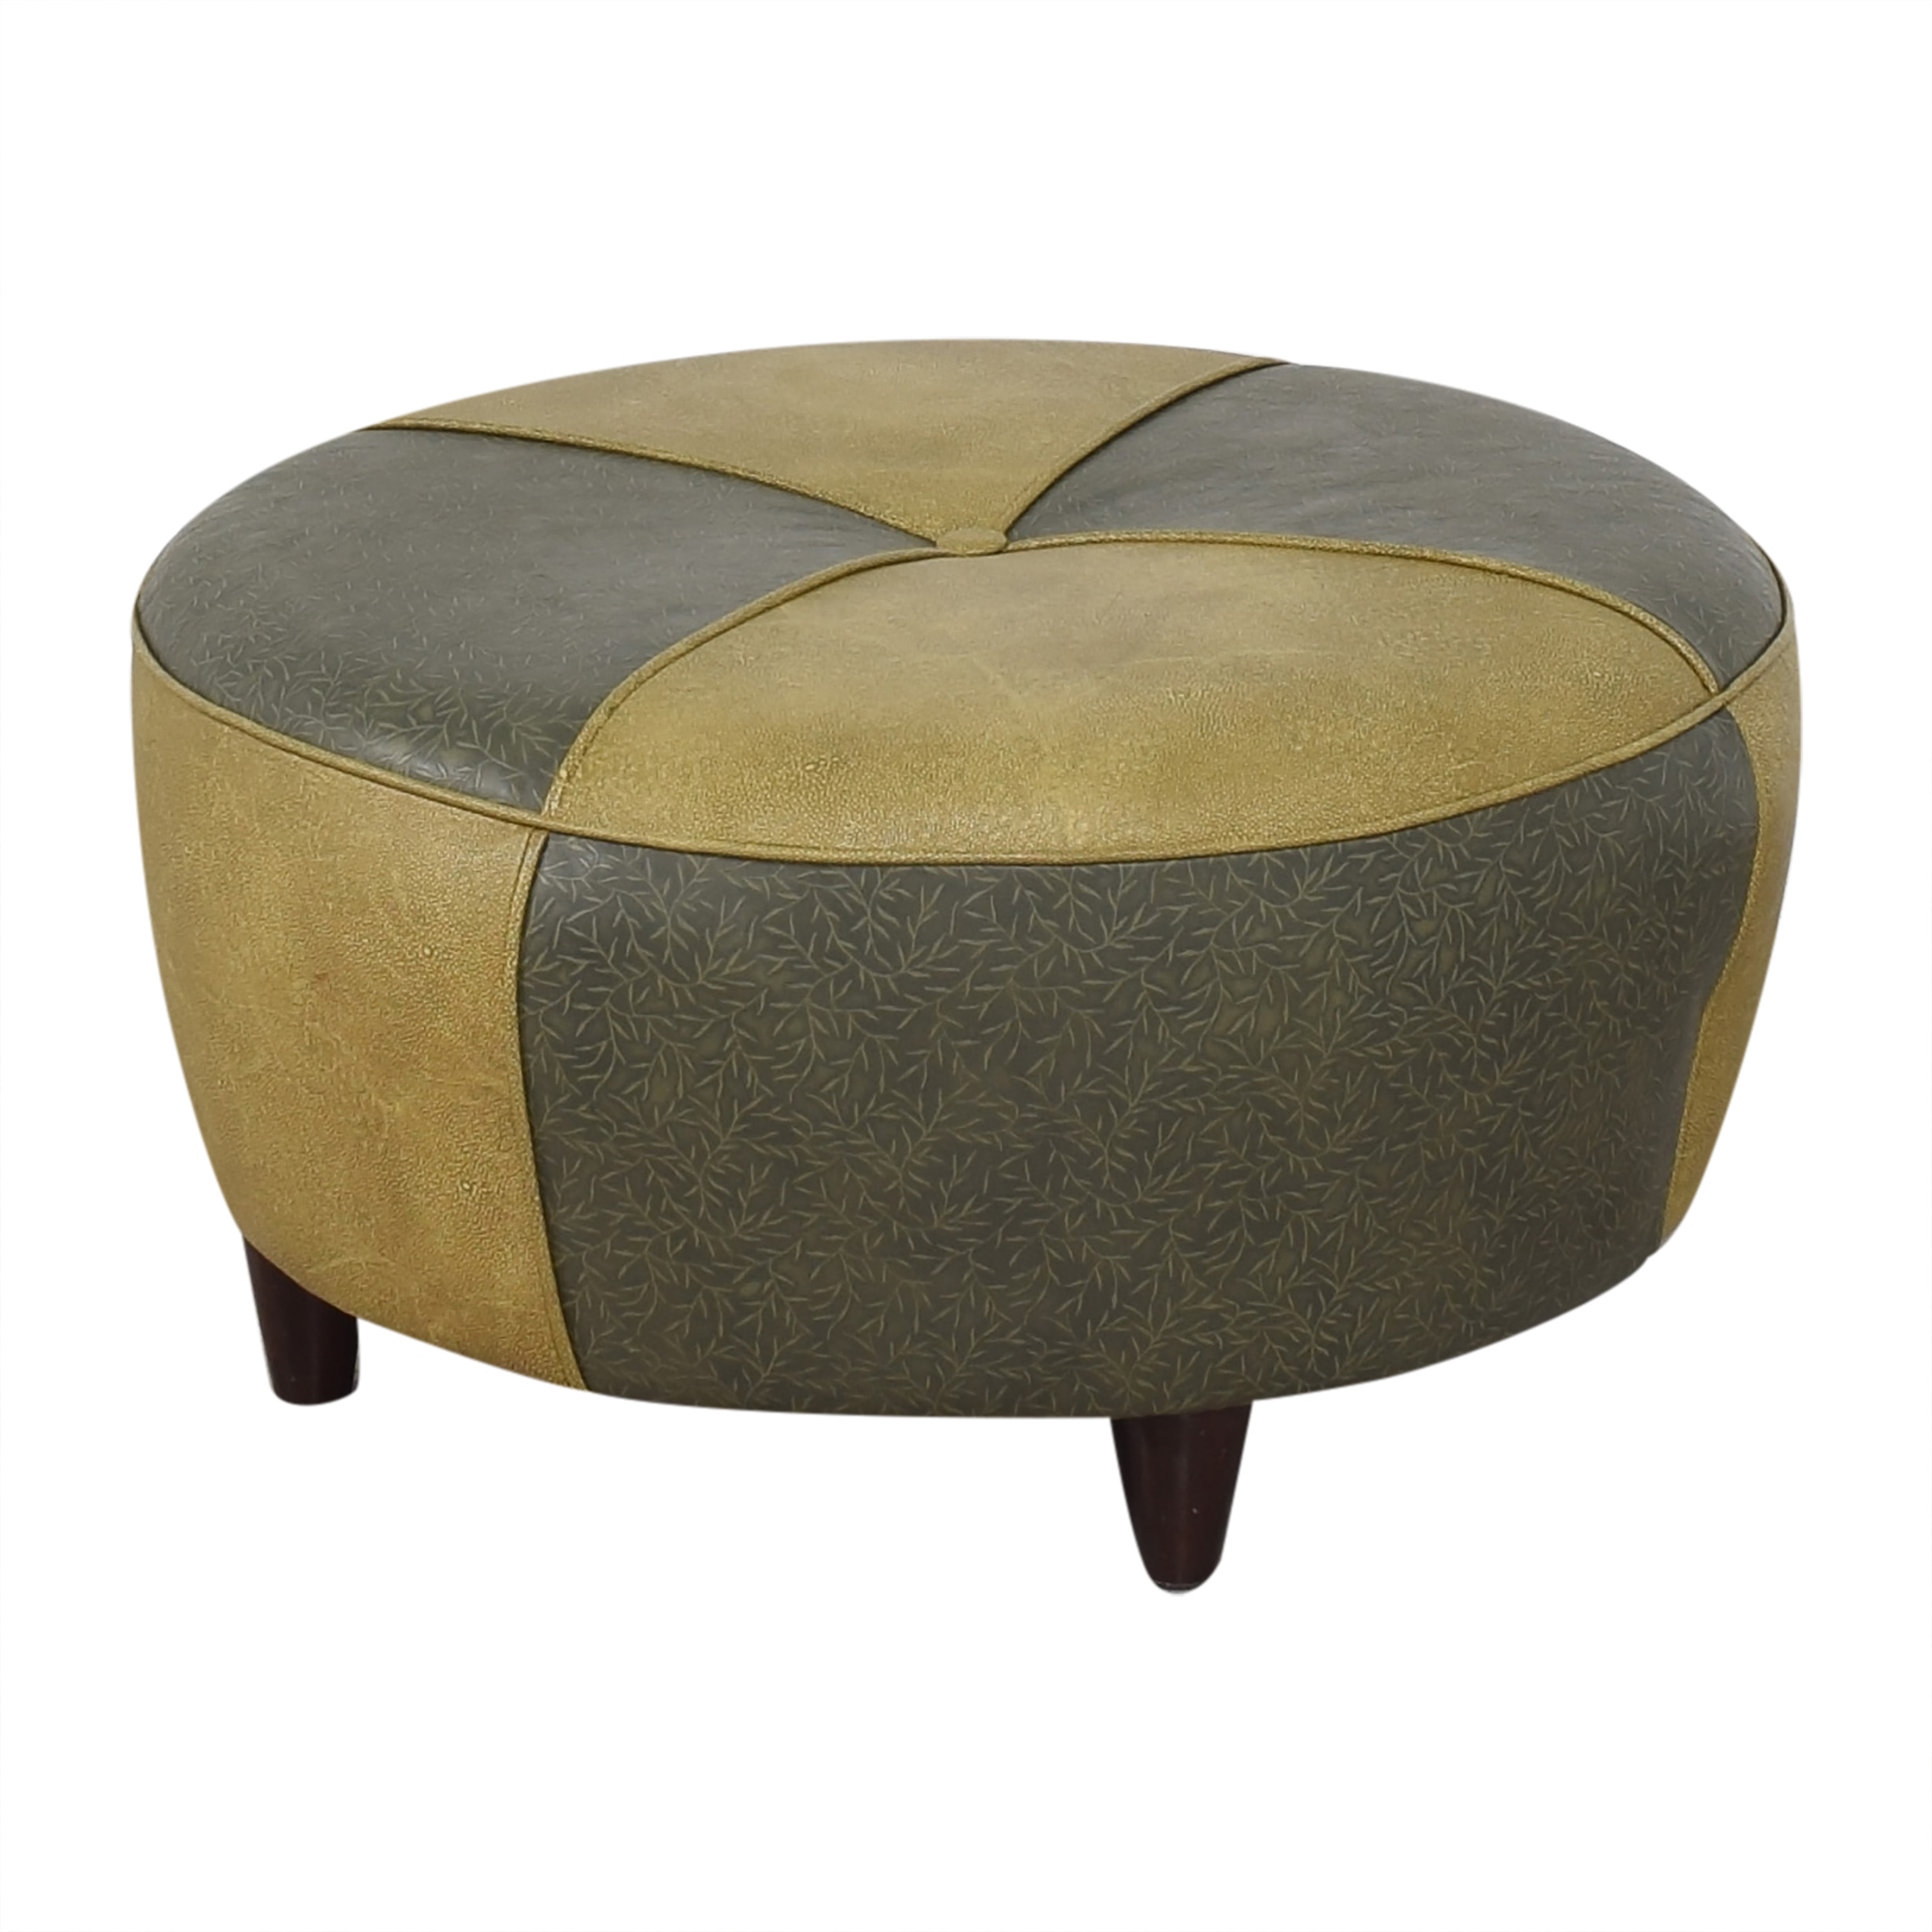 Charter Furniture Charter Furniture Two Tone Round Ottoman ct